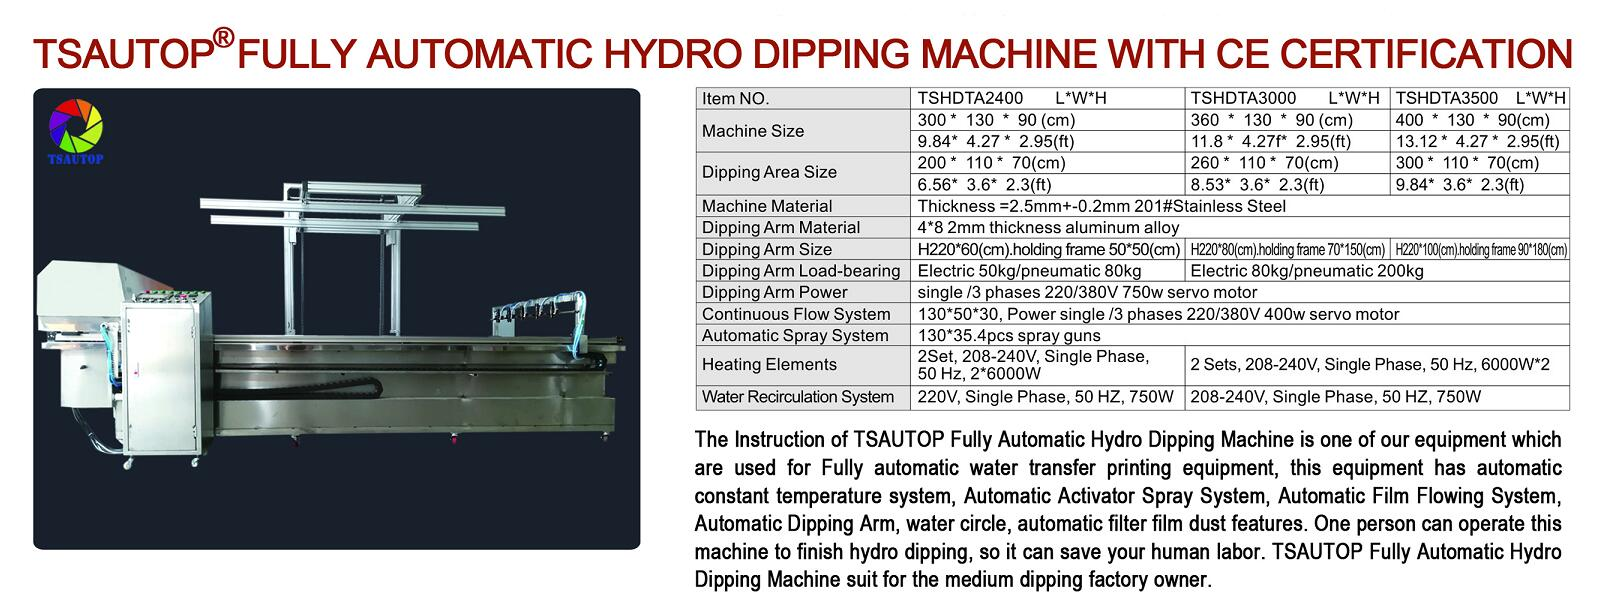 FULLY AUTOMATIC HYDRO DIPPING MACHINE